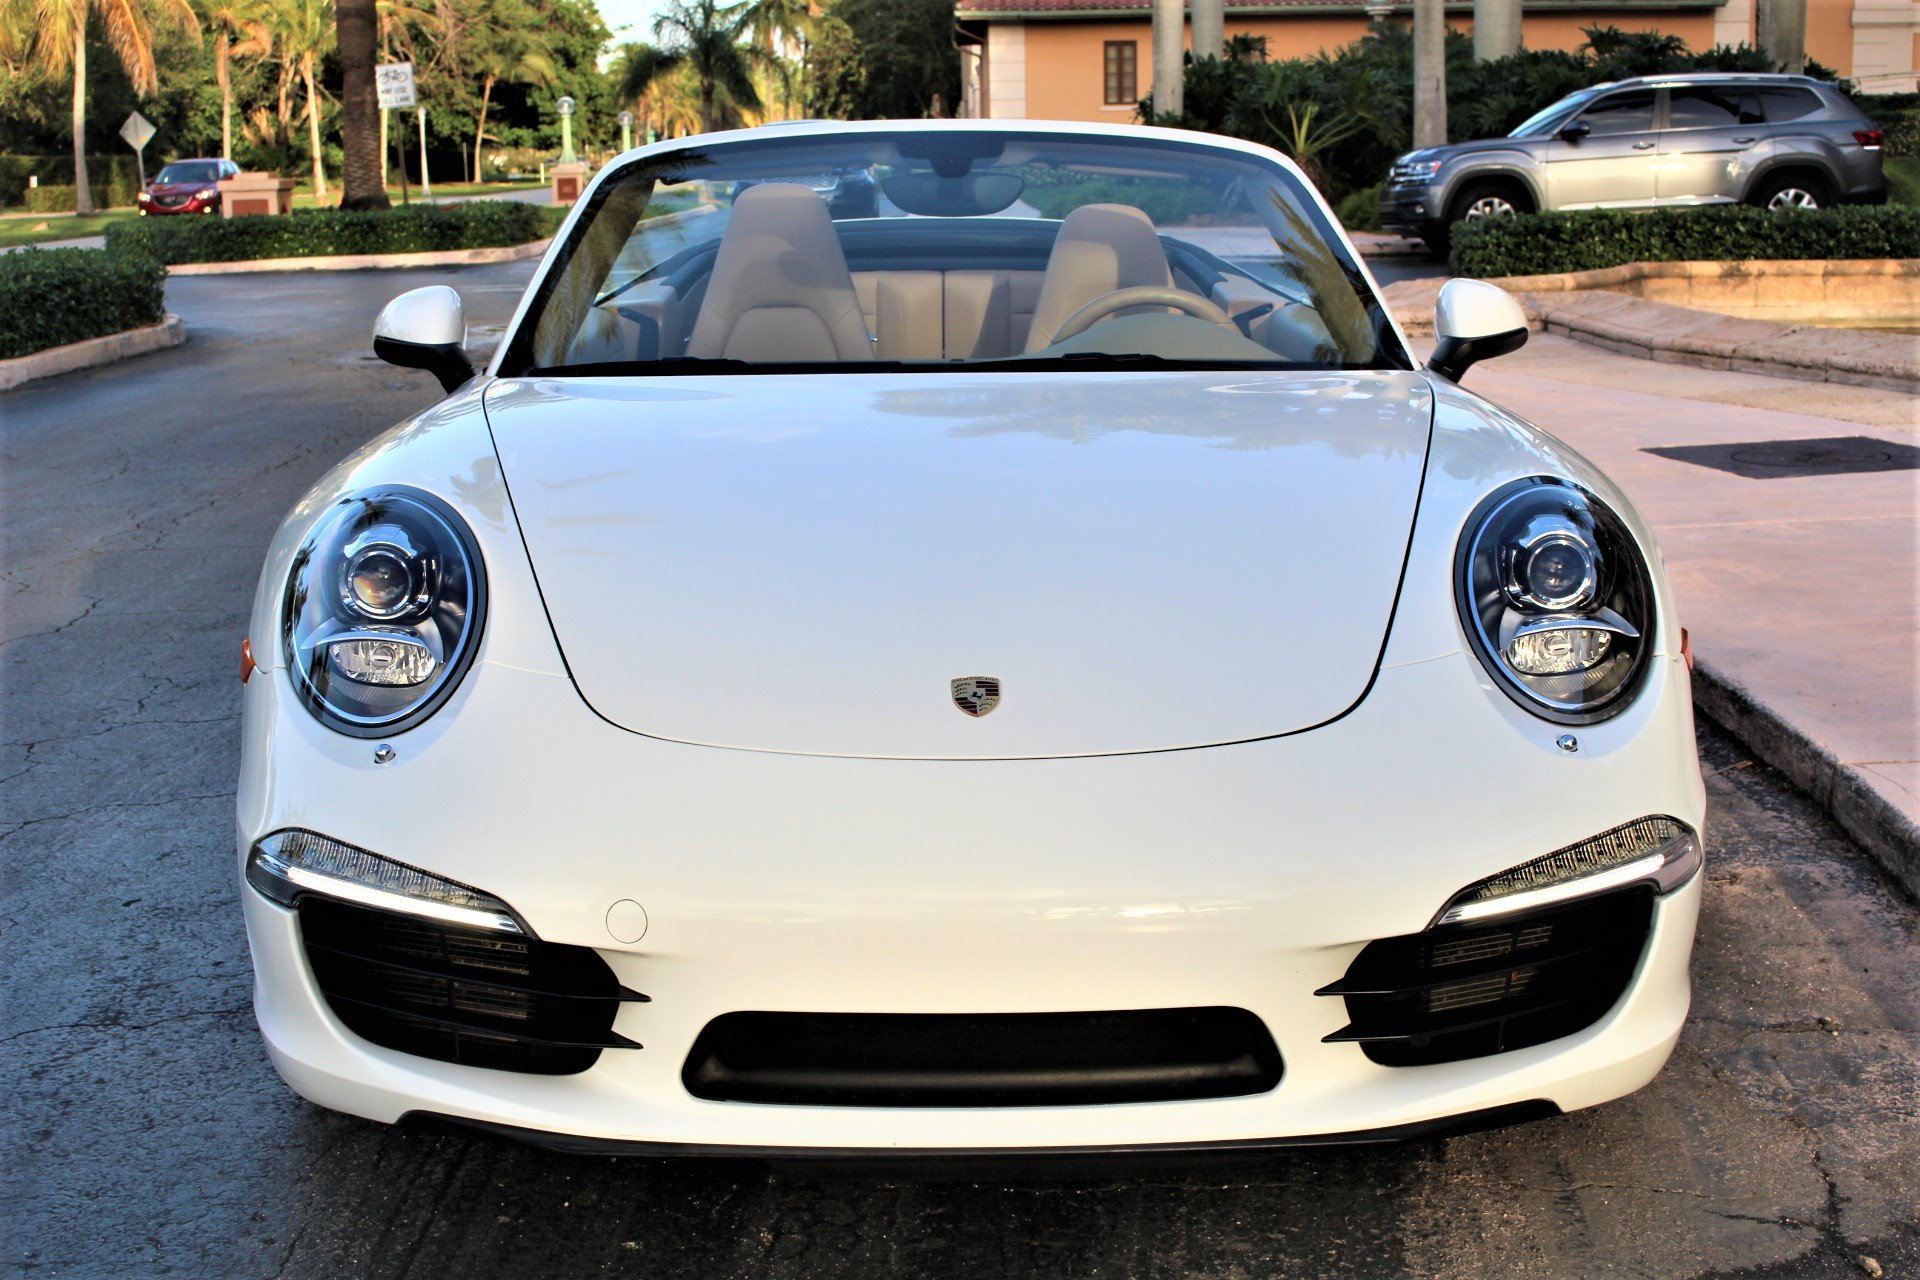 Used 2013 Porsche 911 Carrera S for sale Sold at The Gables Sports Cars in Miami FL 33146 4